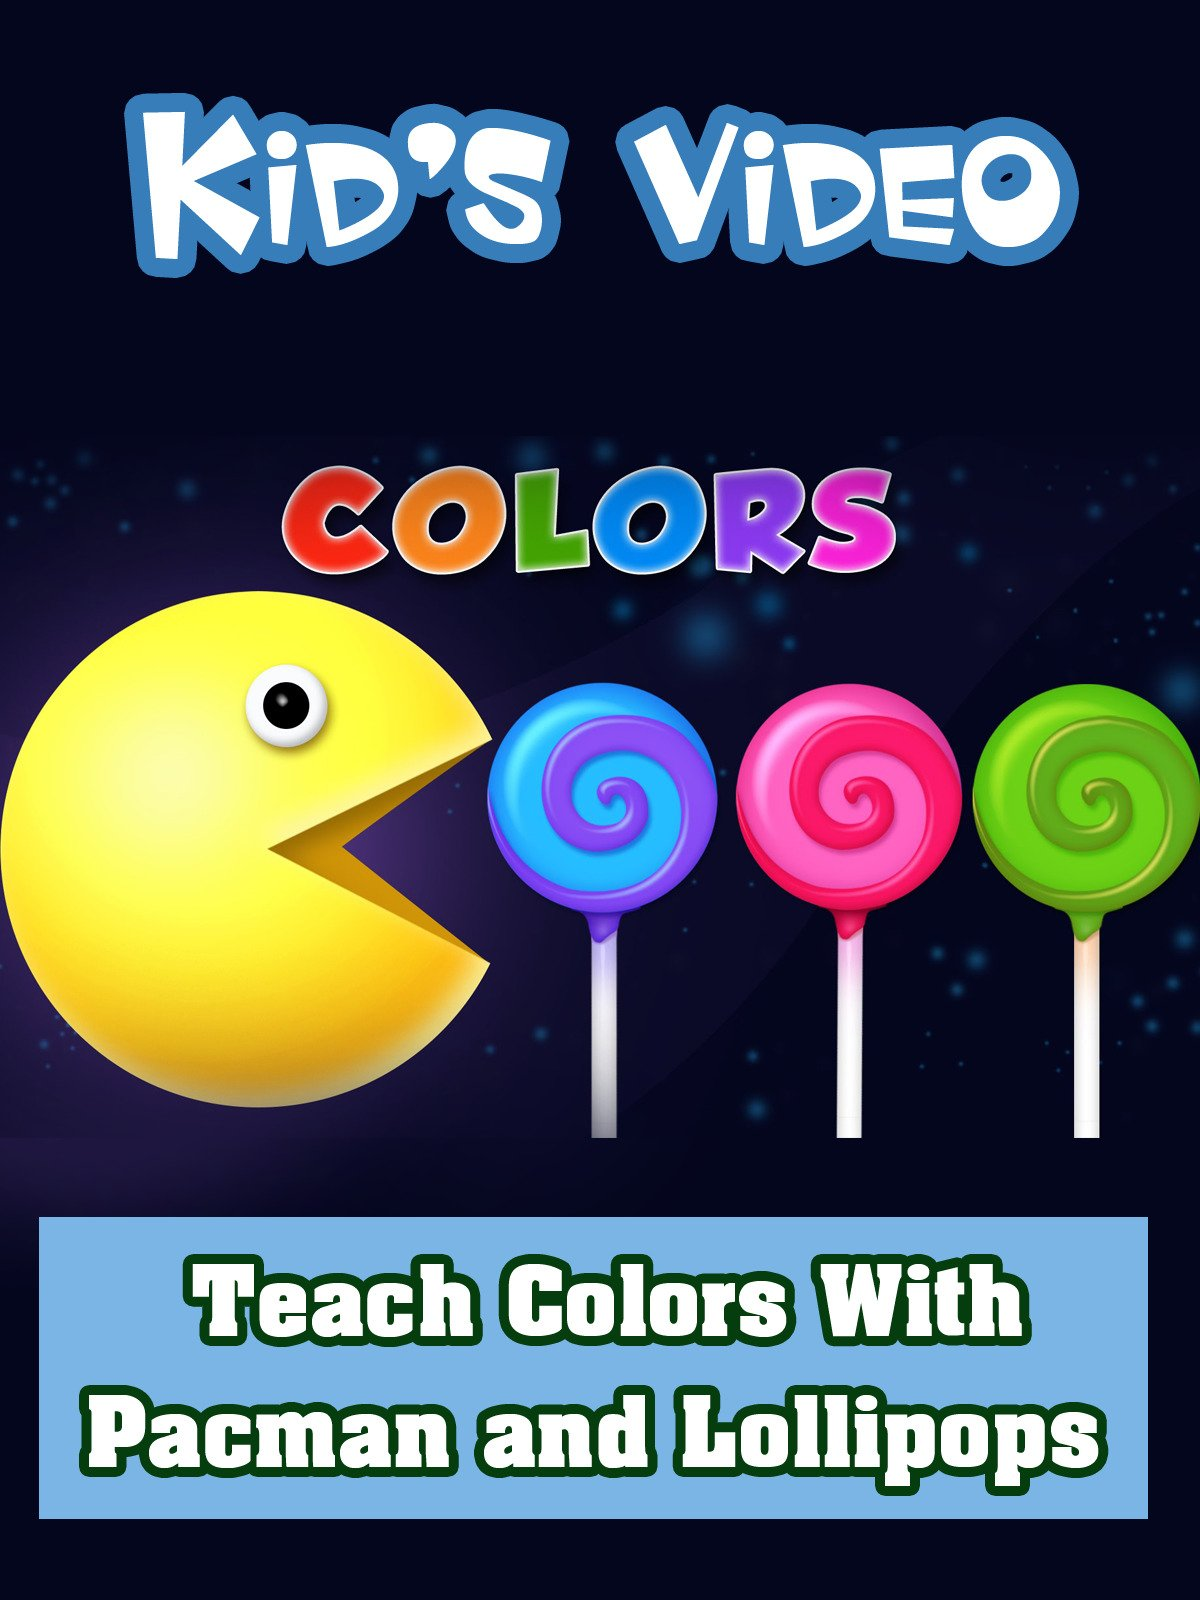 Teach Colors With Pacman and Lollipops